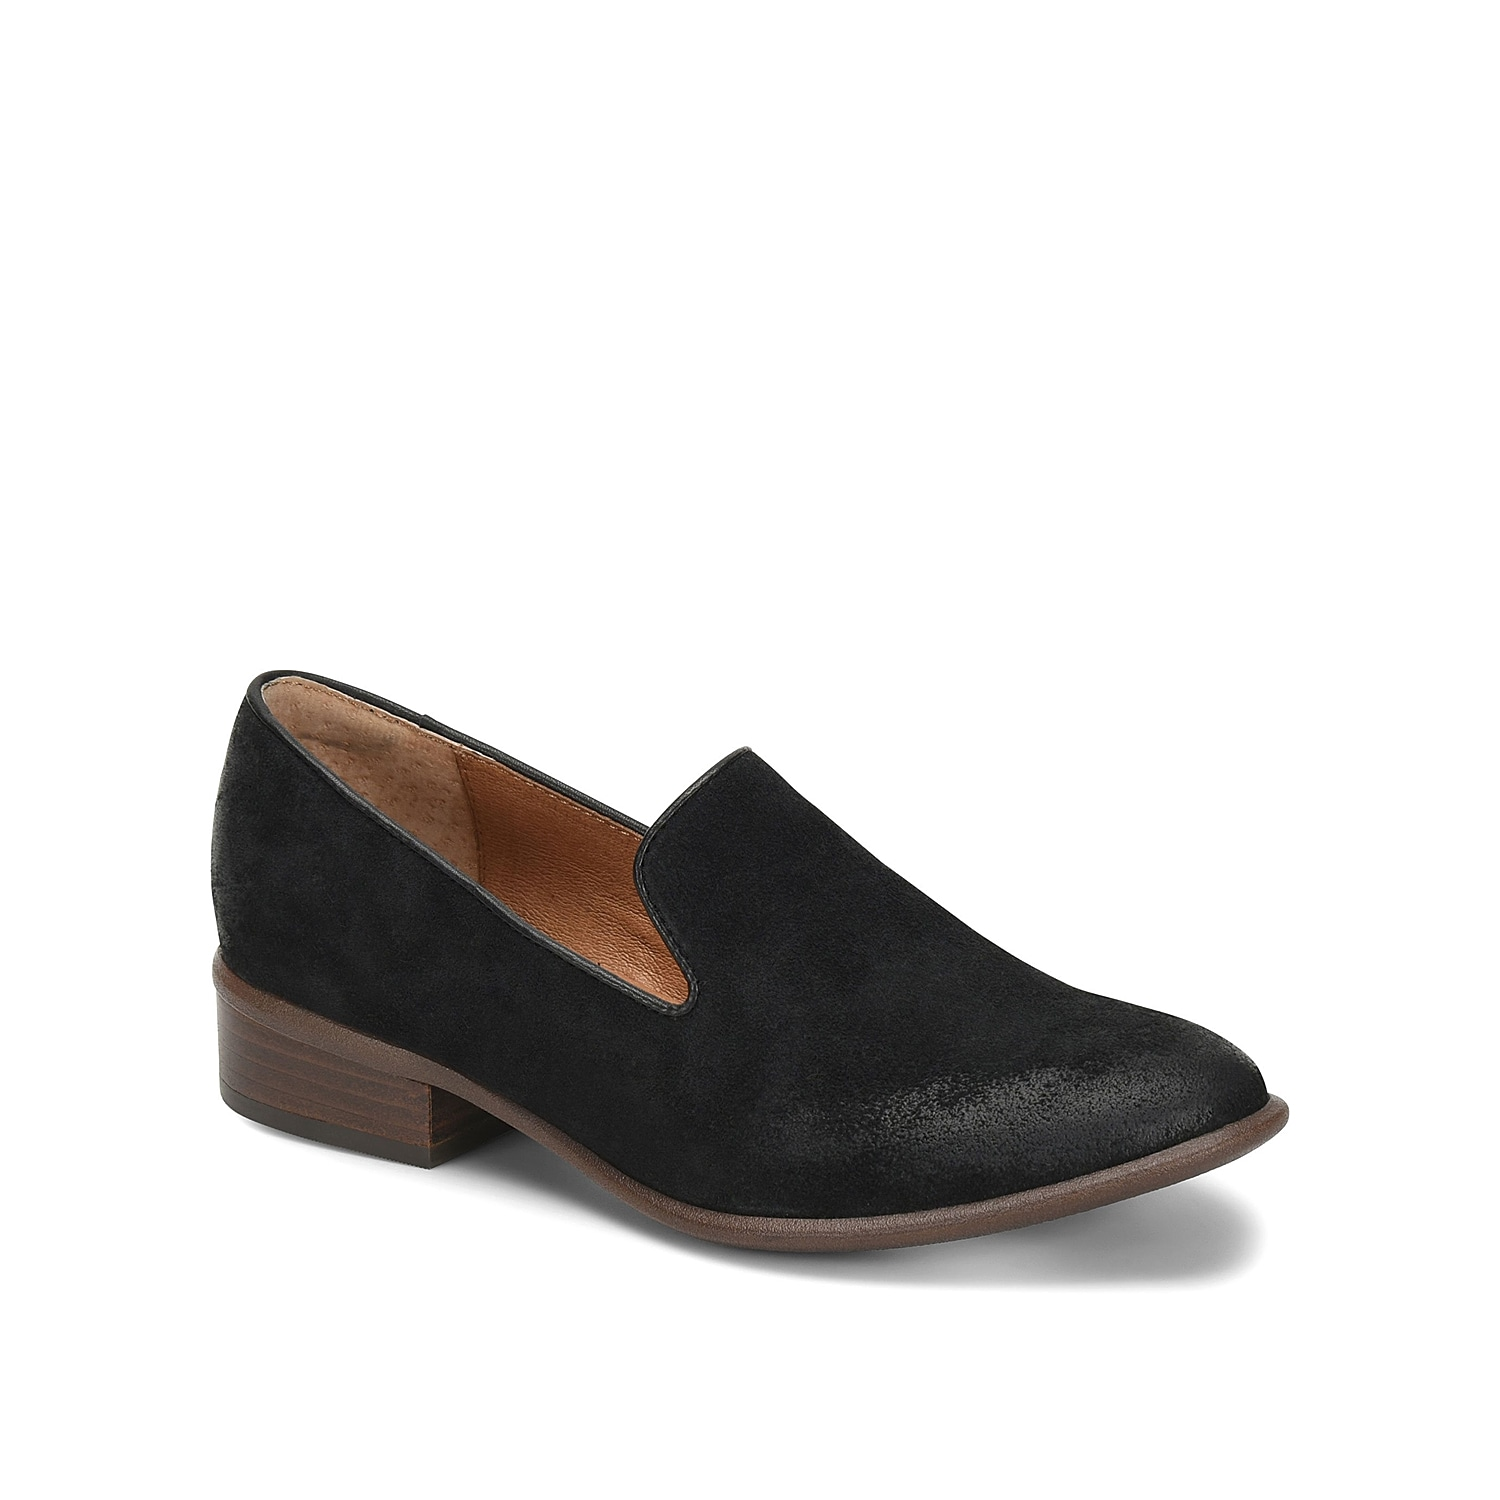 Give work or weekend attire a classic feel with the Severn loafer from Sofft. These suede smoking slippers feature a cushioned footbed for arch support and a low block heel for easygoing steps.